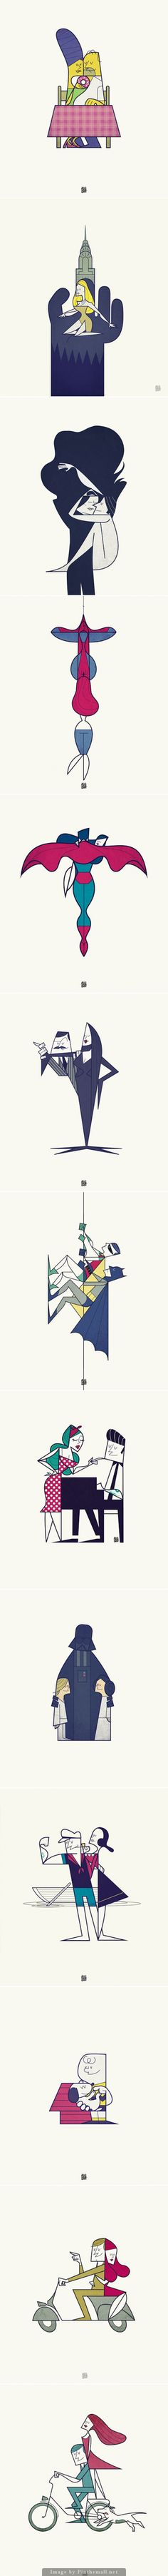 Famous Pop Culture Couples Illustrations by Ale Giorgini